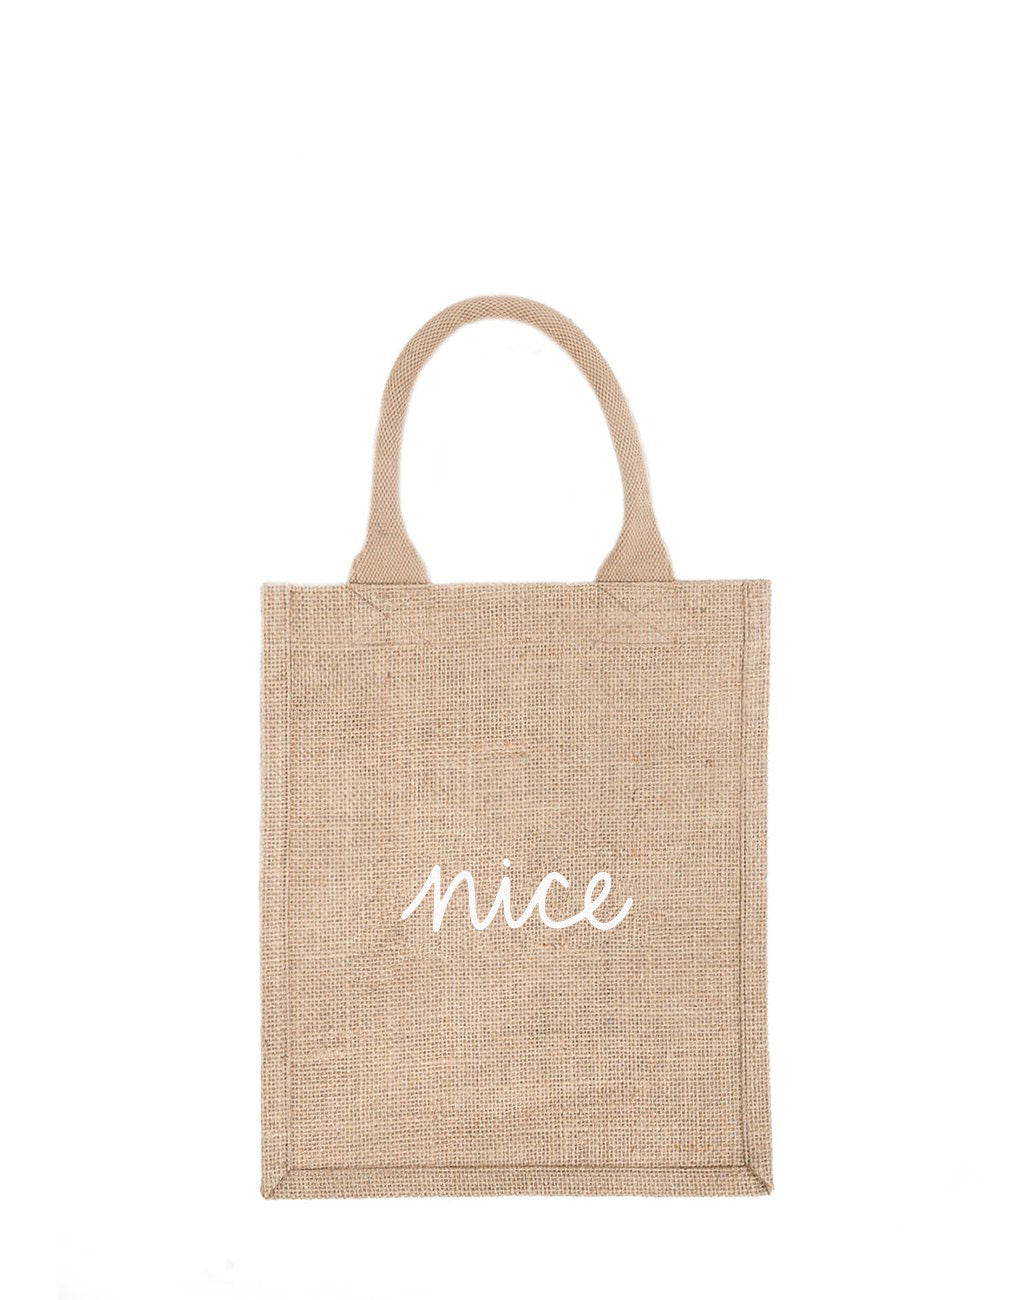 Medium Nice Reusable Gift Tote In White Font | The Little Market